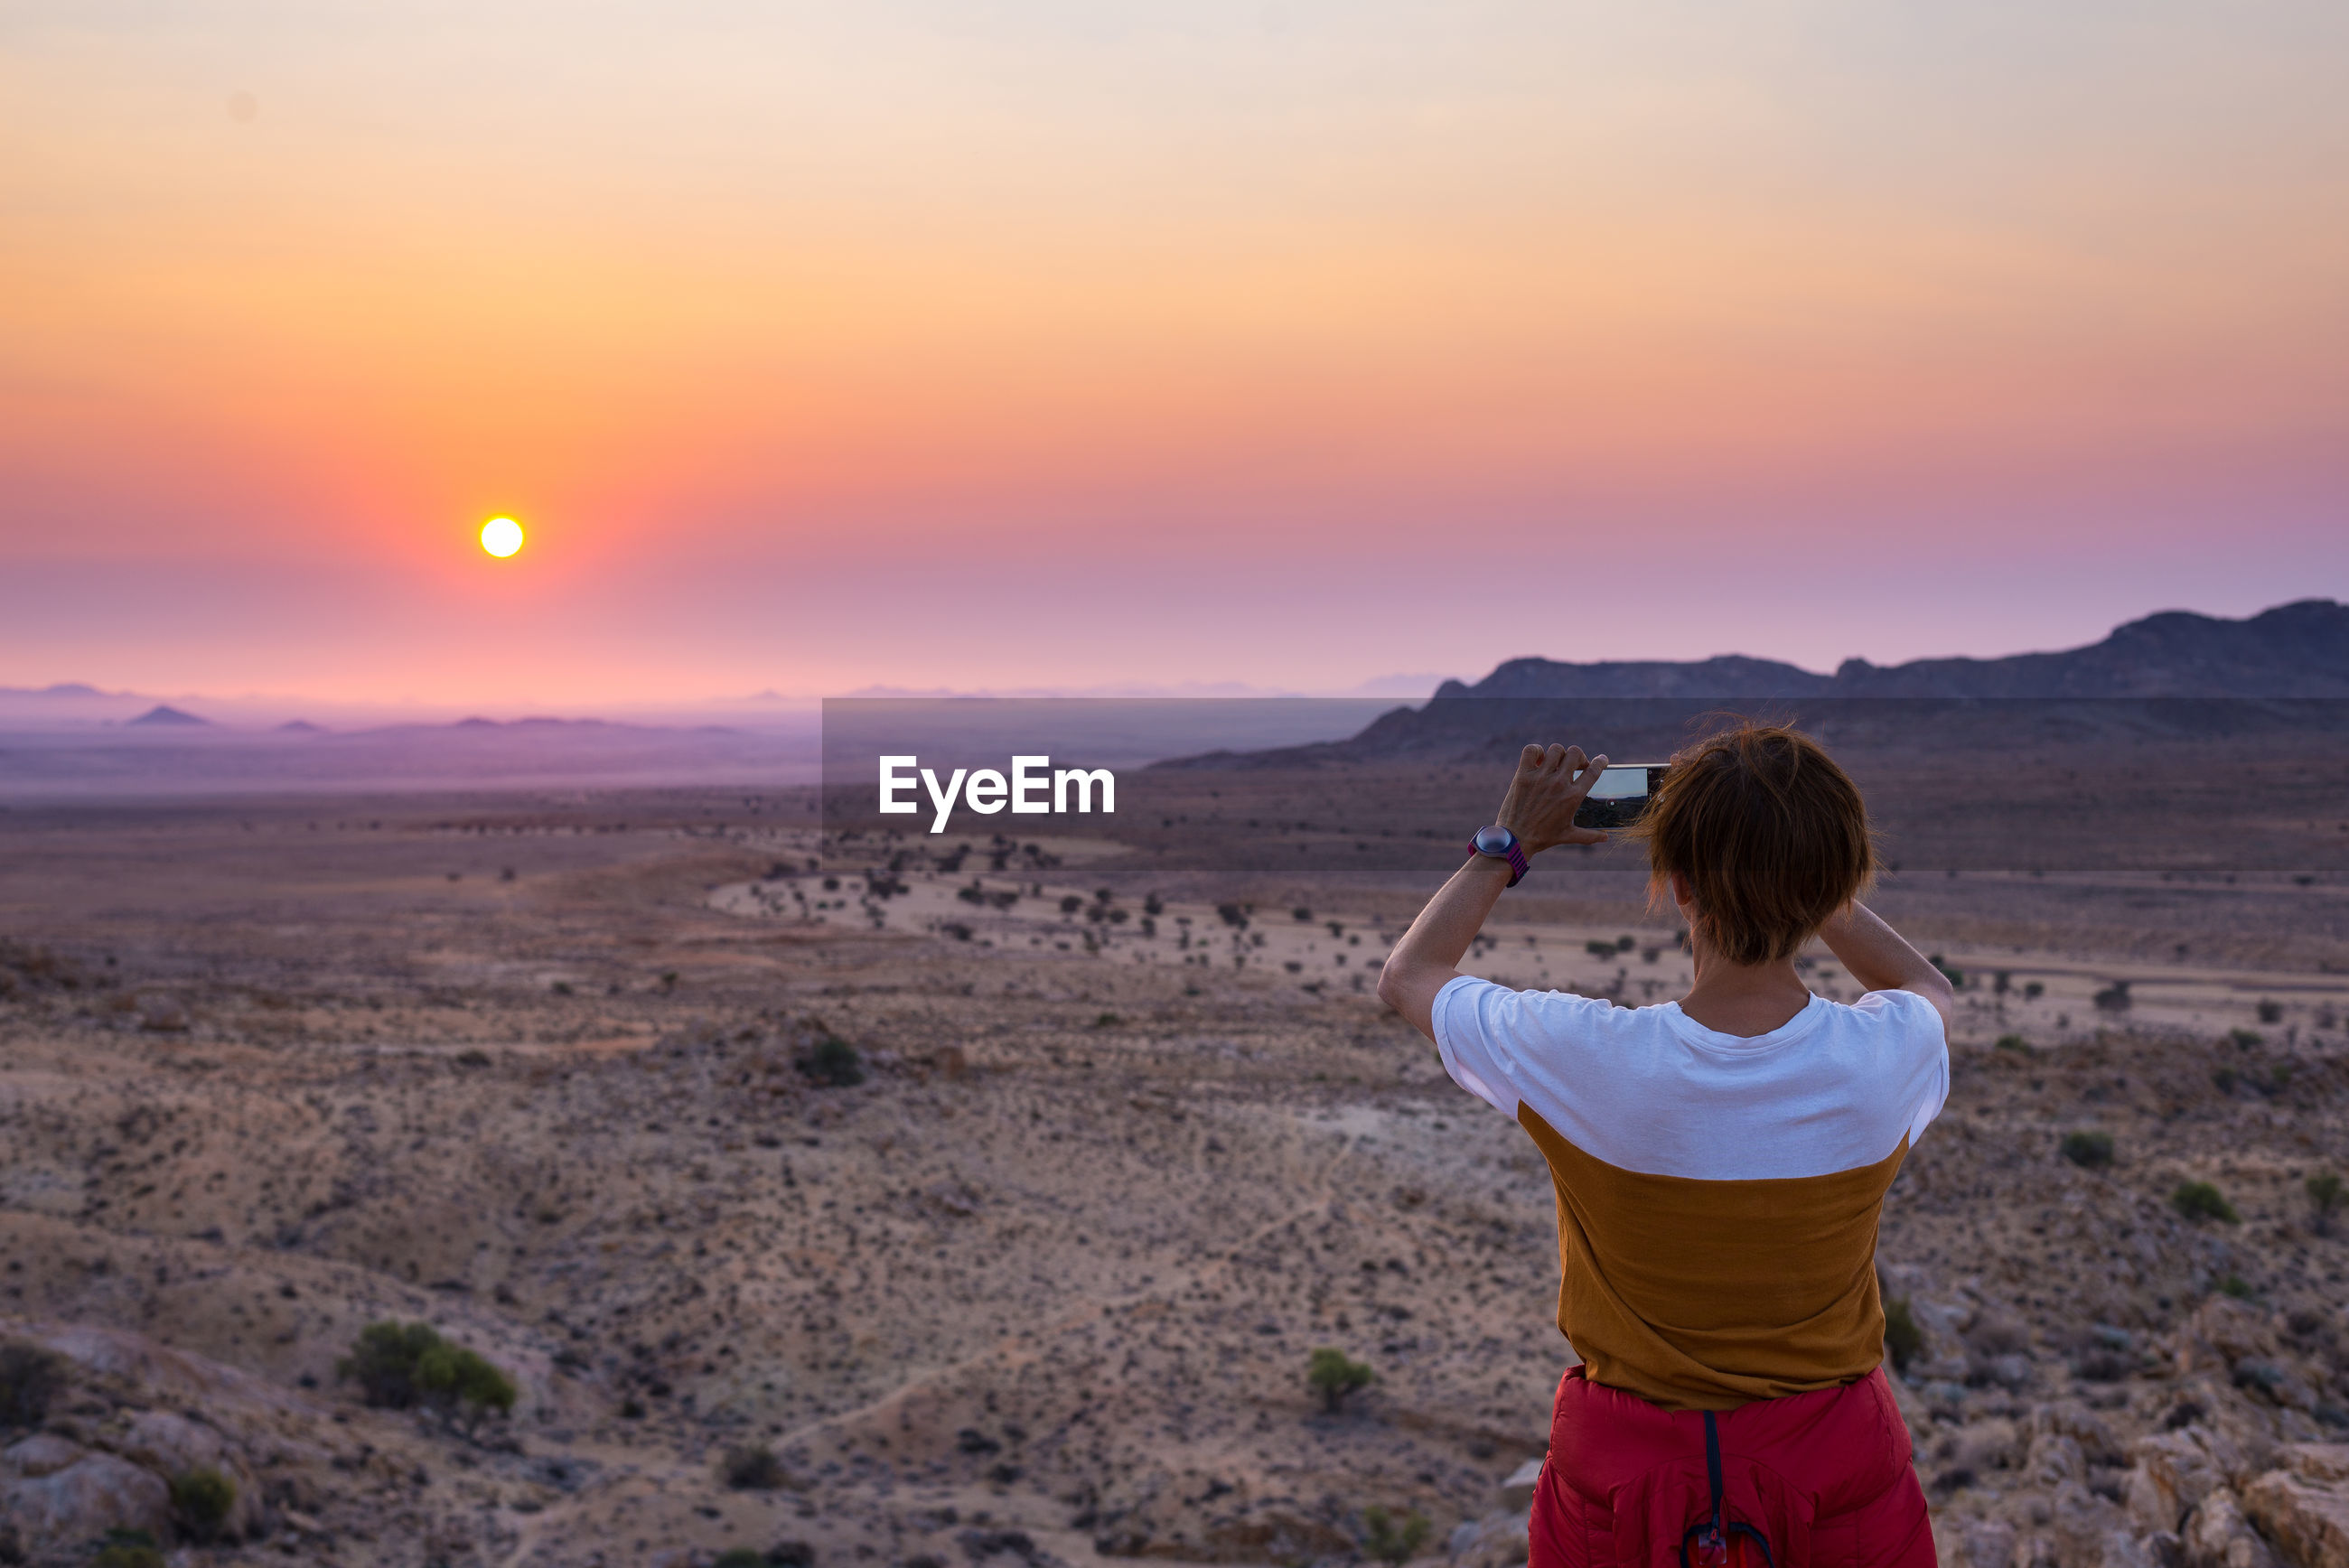 Rear view of woman photographing sunset